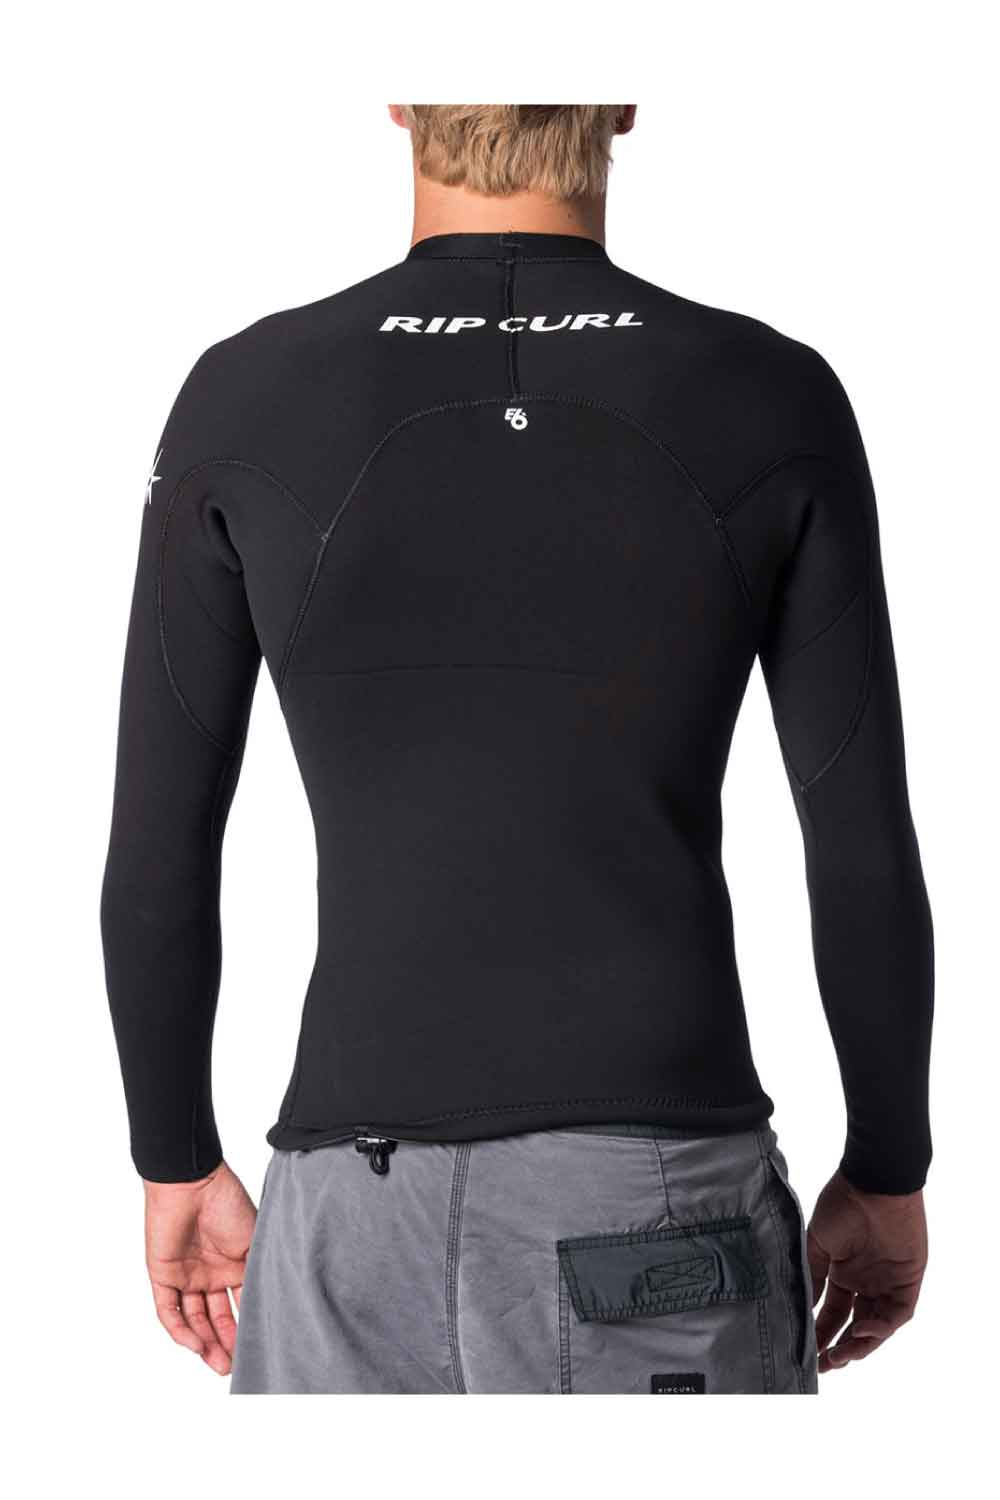 Rip Curl E-Bomb 1.5mm Long Sleeve Wetsuit Jacket